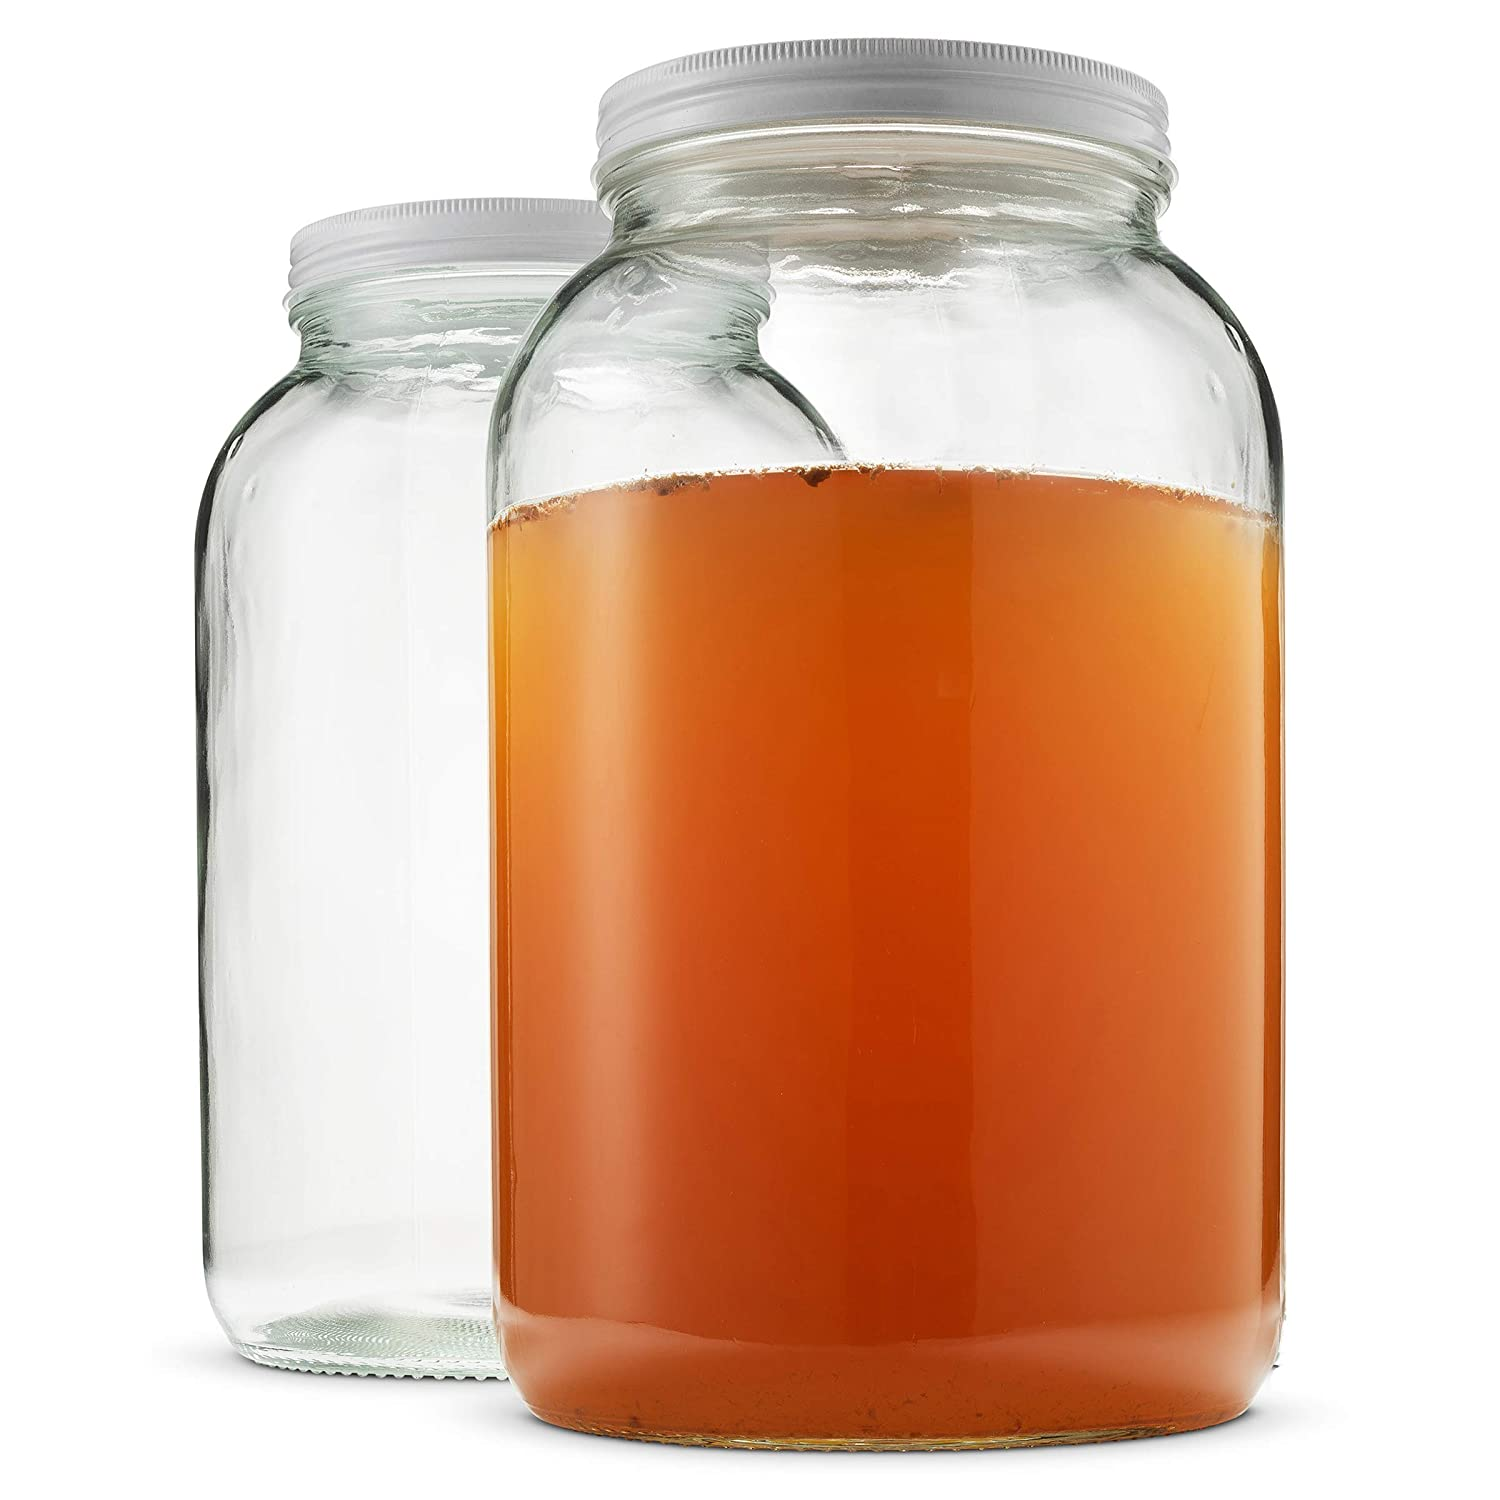 Paksh Novelty Wide Mouth 1 Gallon Clear Glass Jar + Metal Lid With Airtight Liner Seal • Use for Fermenting Kombucha/Kefir, Storing and Canning • USDA Approved, Dishwasher Safe (2 Pack)